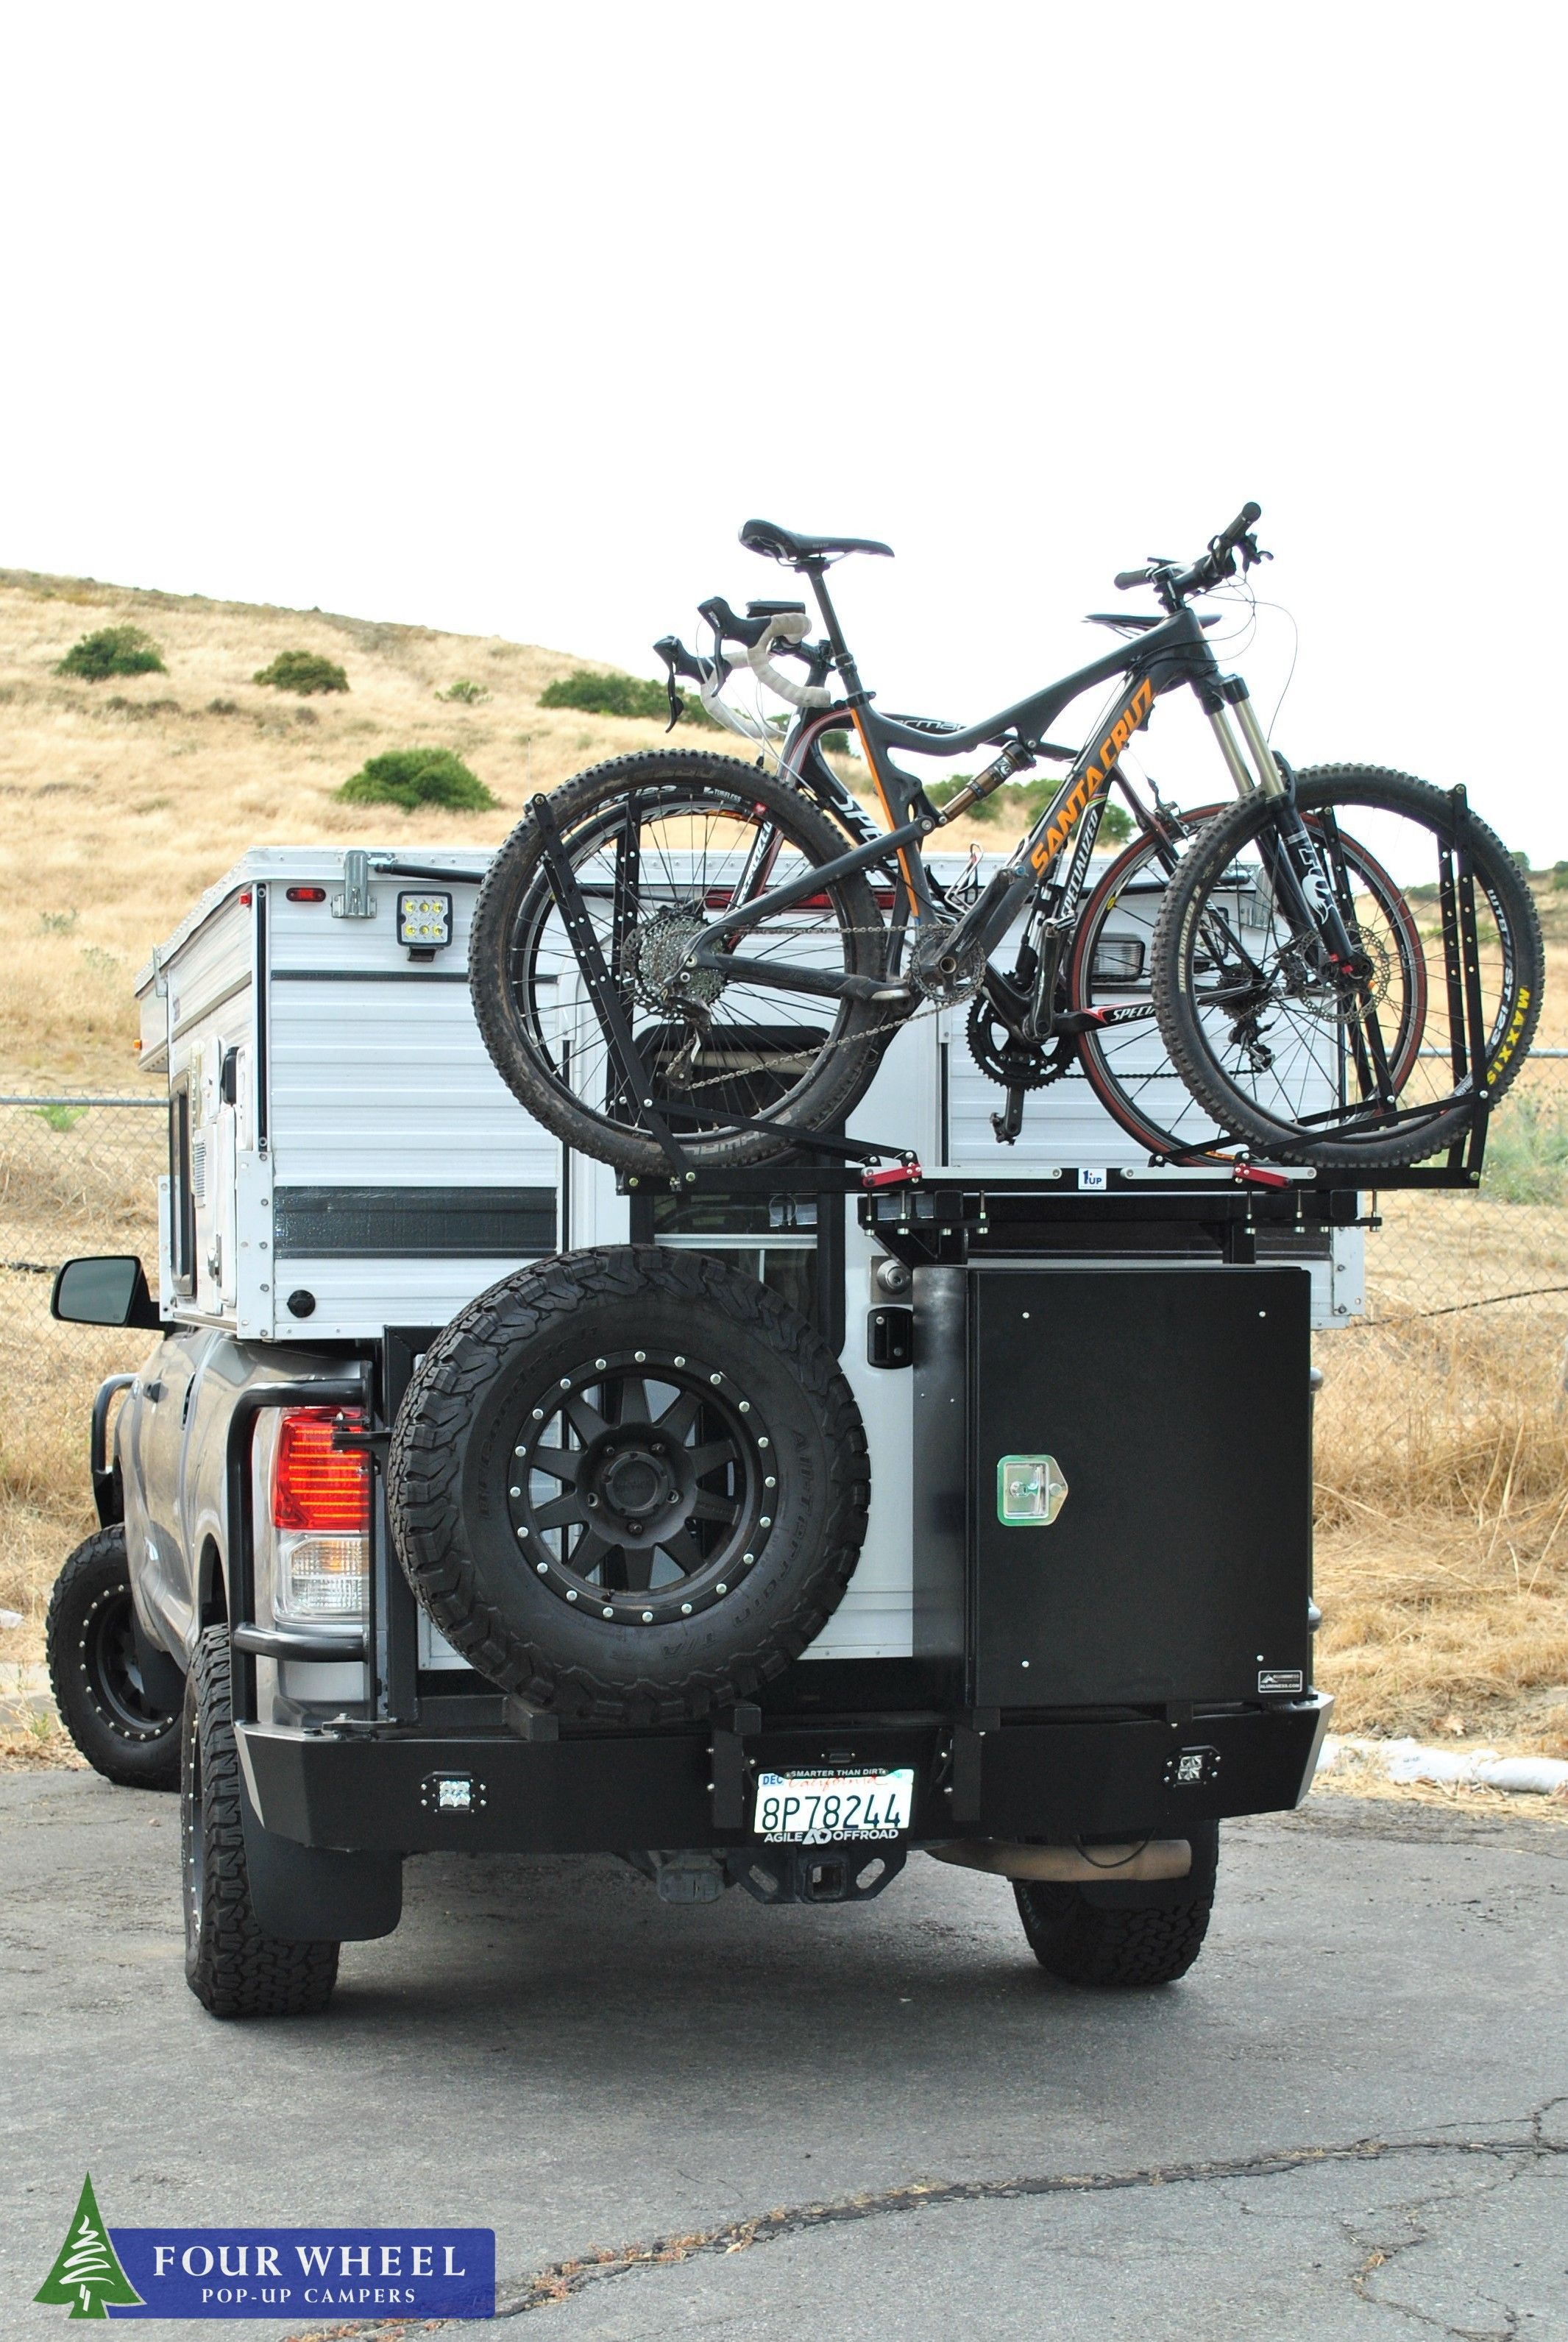 Vanlife With The Bike At The Back Of Your Popuptruckcampers